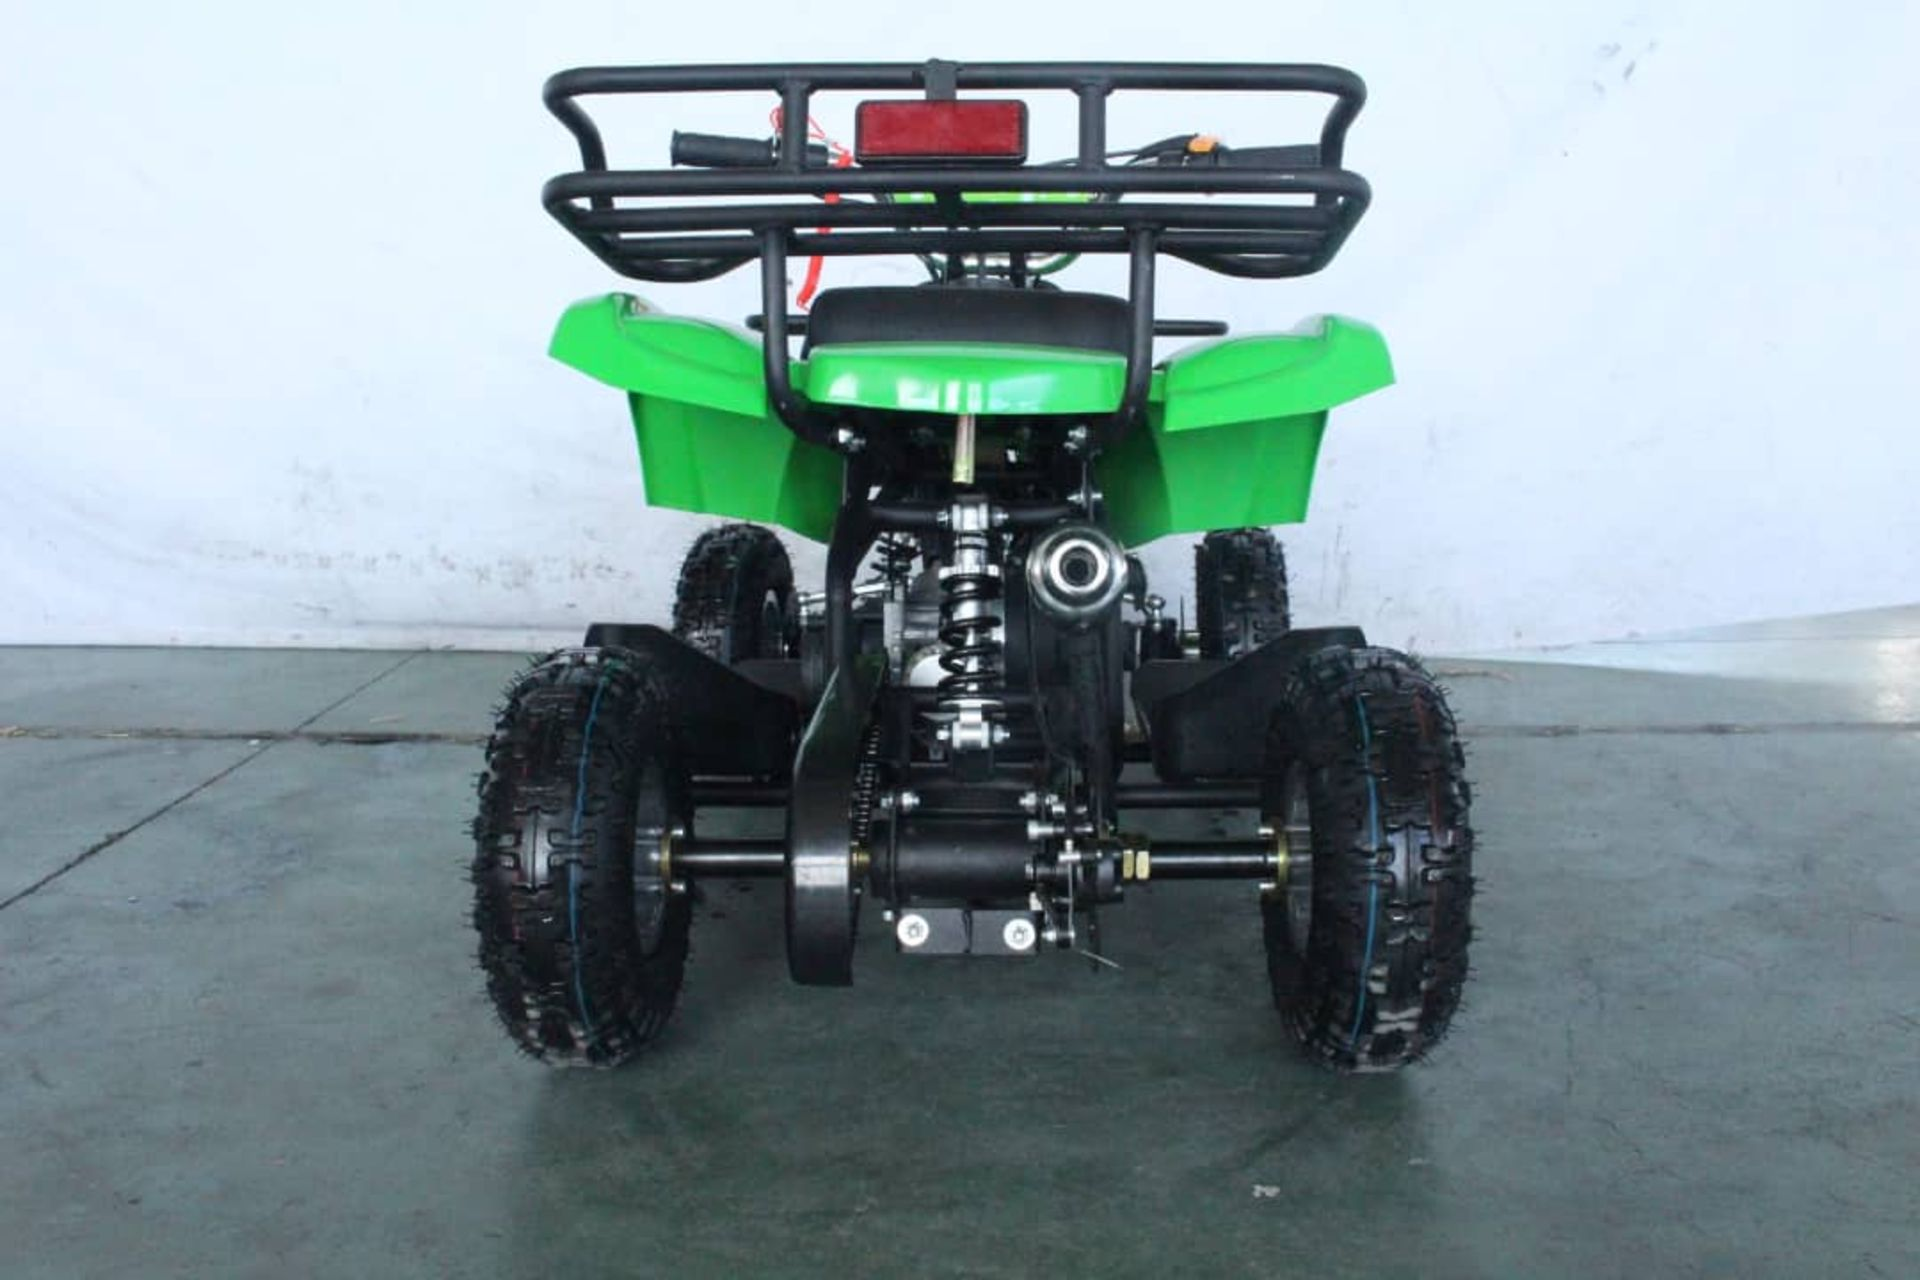 + VAT Brand New 50cc Mini Quad Bike FRM - Colours May Vary - Picture May Vary From Actual Item - Image 7 of 9